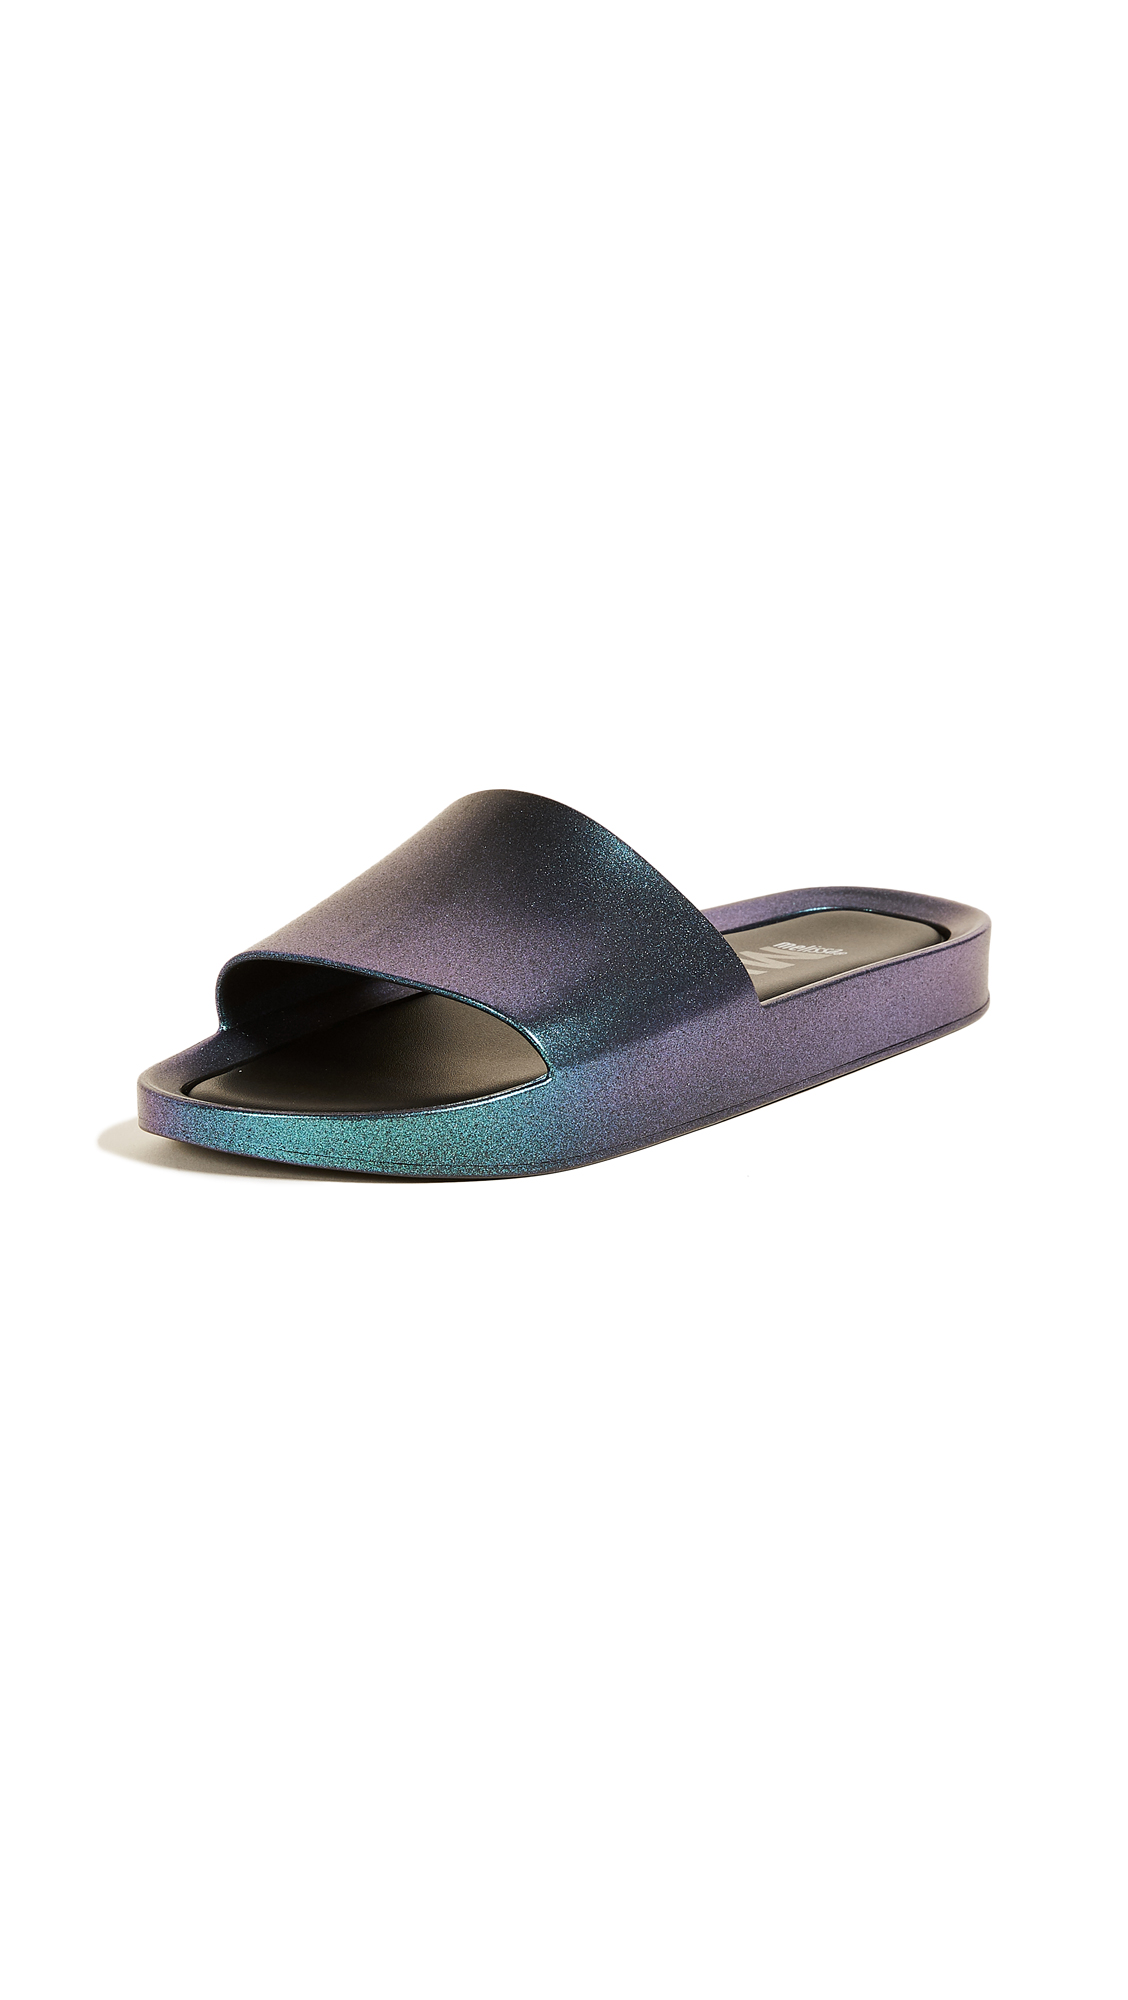 Melissa Beach Slide Shine Sandals - Blue Iridescent